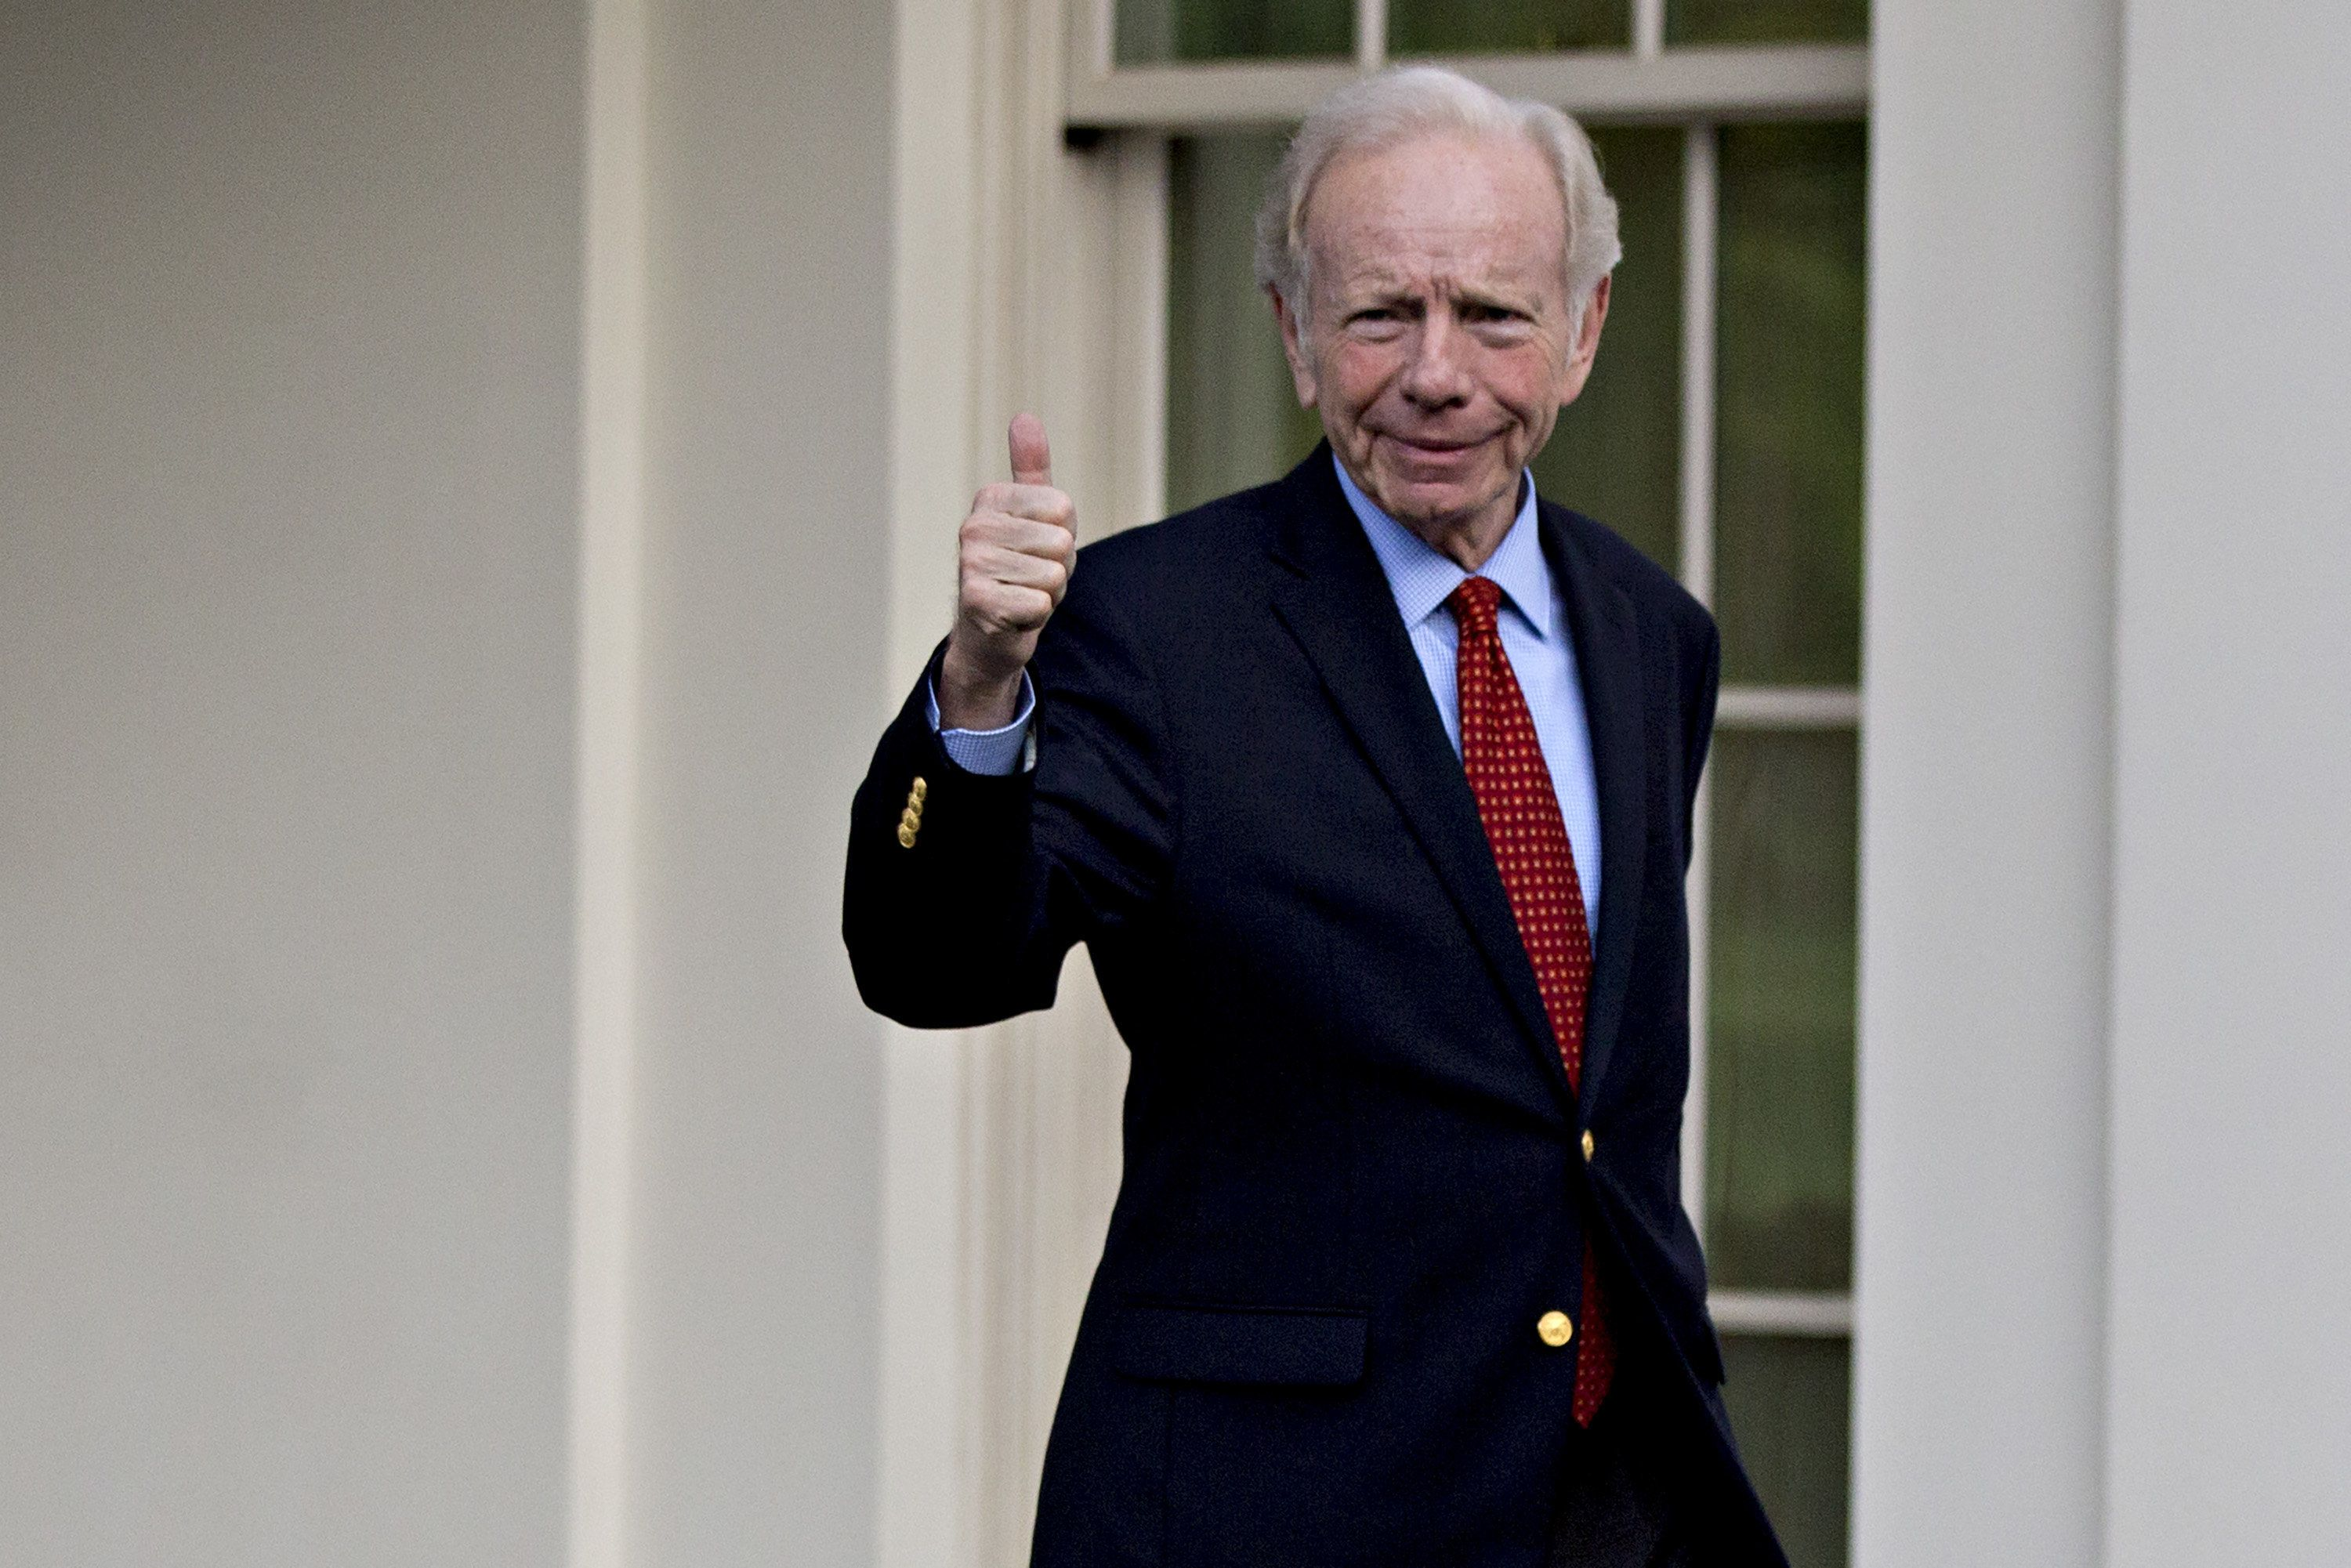 Former Senator Joe Lieberman, an Independent from Connecticut, gives a thumbs-up while walking out of the West Wing of the White House after a meeting with U.S. President Donald Trump, not pictured, in Washington, D.C., U.S., on Wednesday, May 17, 2017. White House press secretary Sean Spicer announced today that Trump would be meeting with four candidates for the position of director of the Federal Bureau of Investigation (FBI) including Lieberman. Photographer: Andrew Harrer/Bloomberg via Getty Images